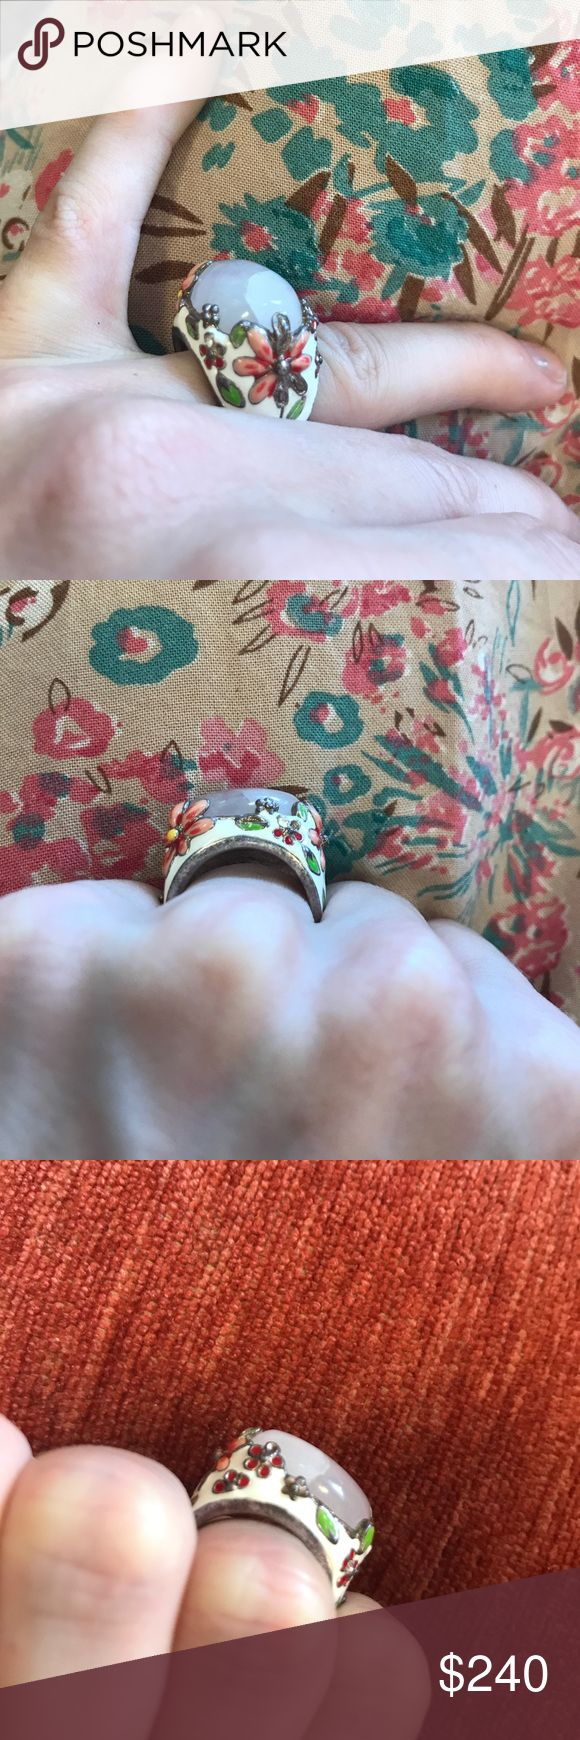 Signed Rose Quarts Enamel Real Silver Ring 925 So funky! Great condition. Bold real stone light pink ring. Enamel base with pink and red flowers. Signed with 925 Canada and SIGAT name inside band. No cracks. Vintage. Canadian. S00041125888542 Anthropologie Jewelry Rings